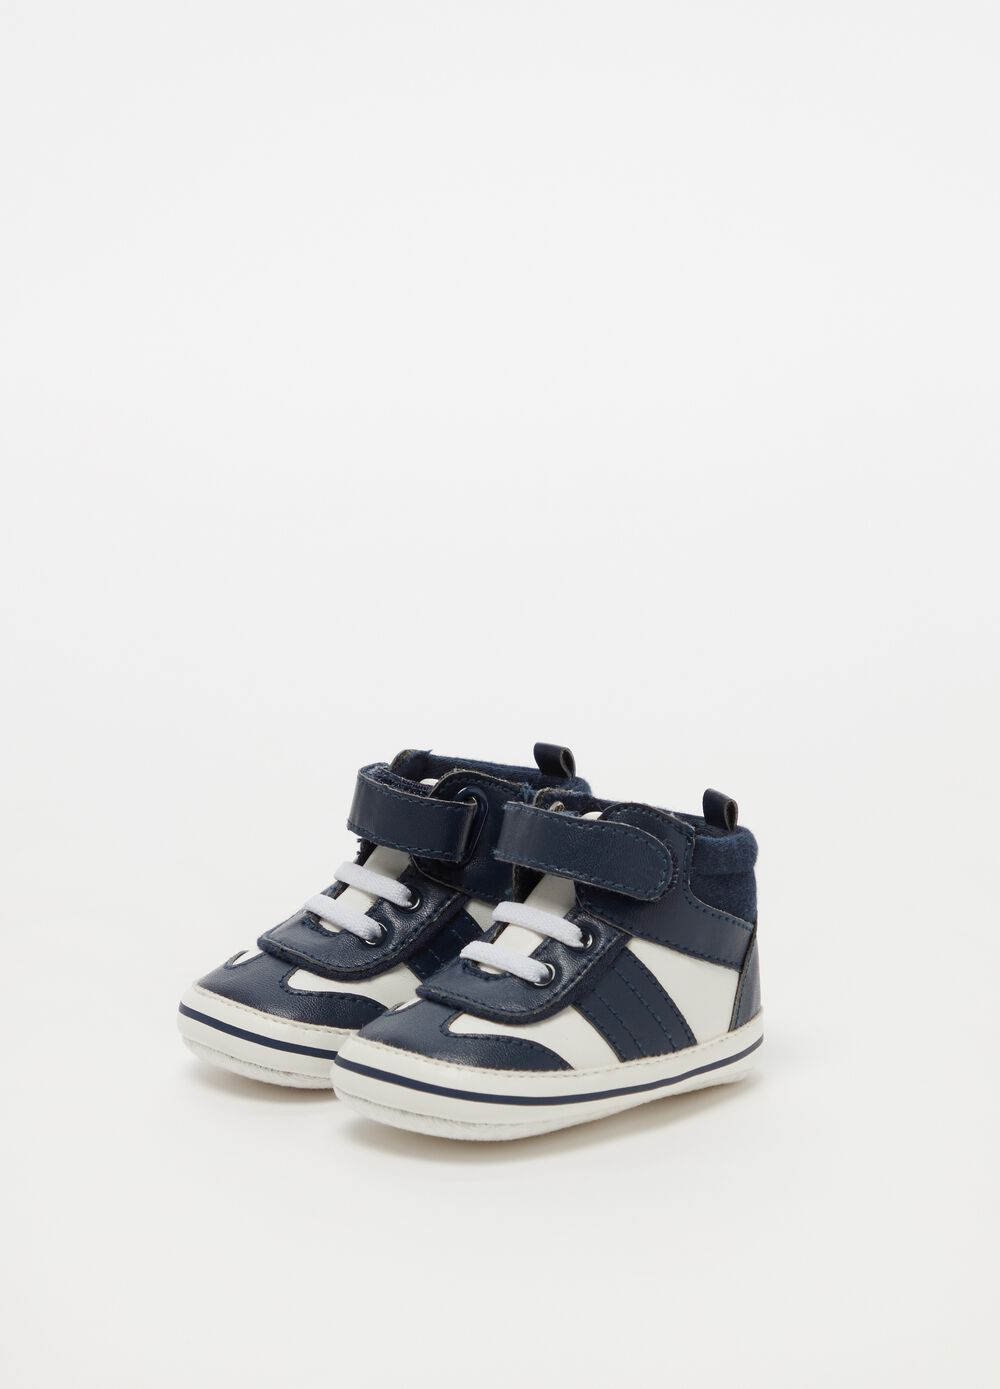 Two-tone sneakers with laces and Velcro